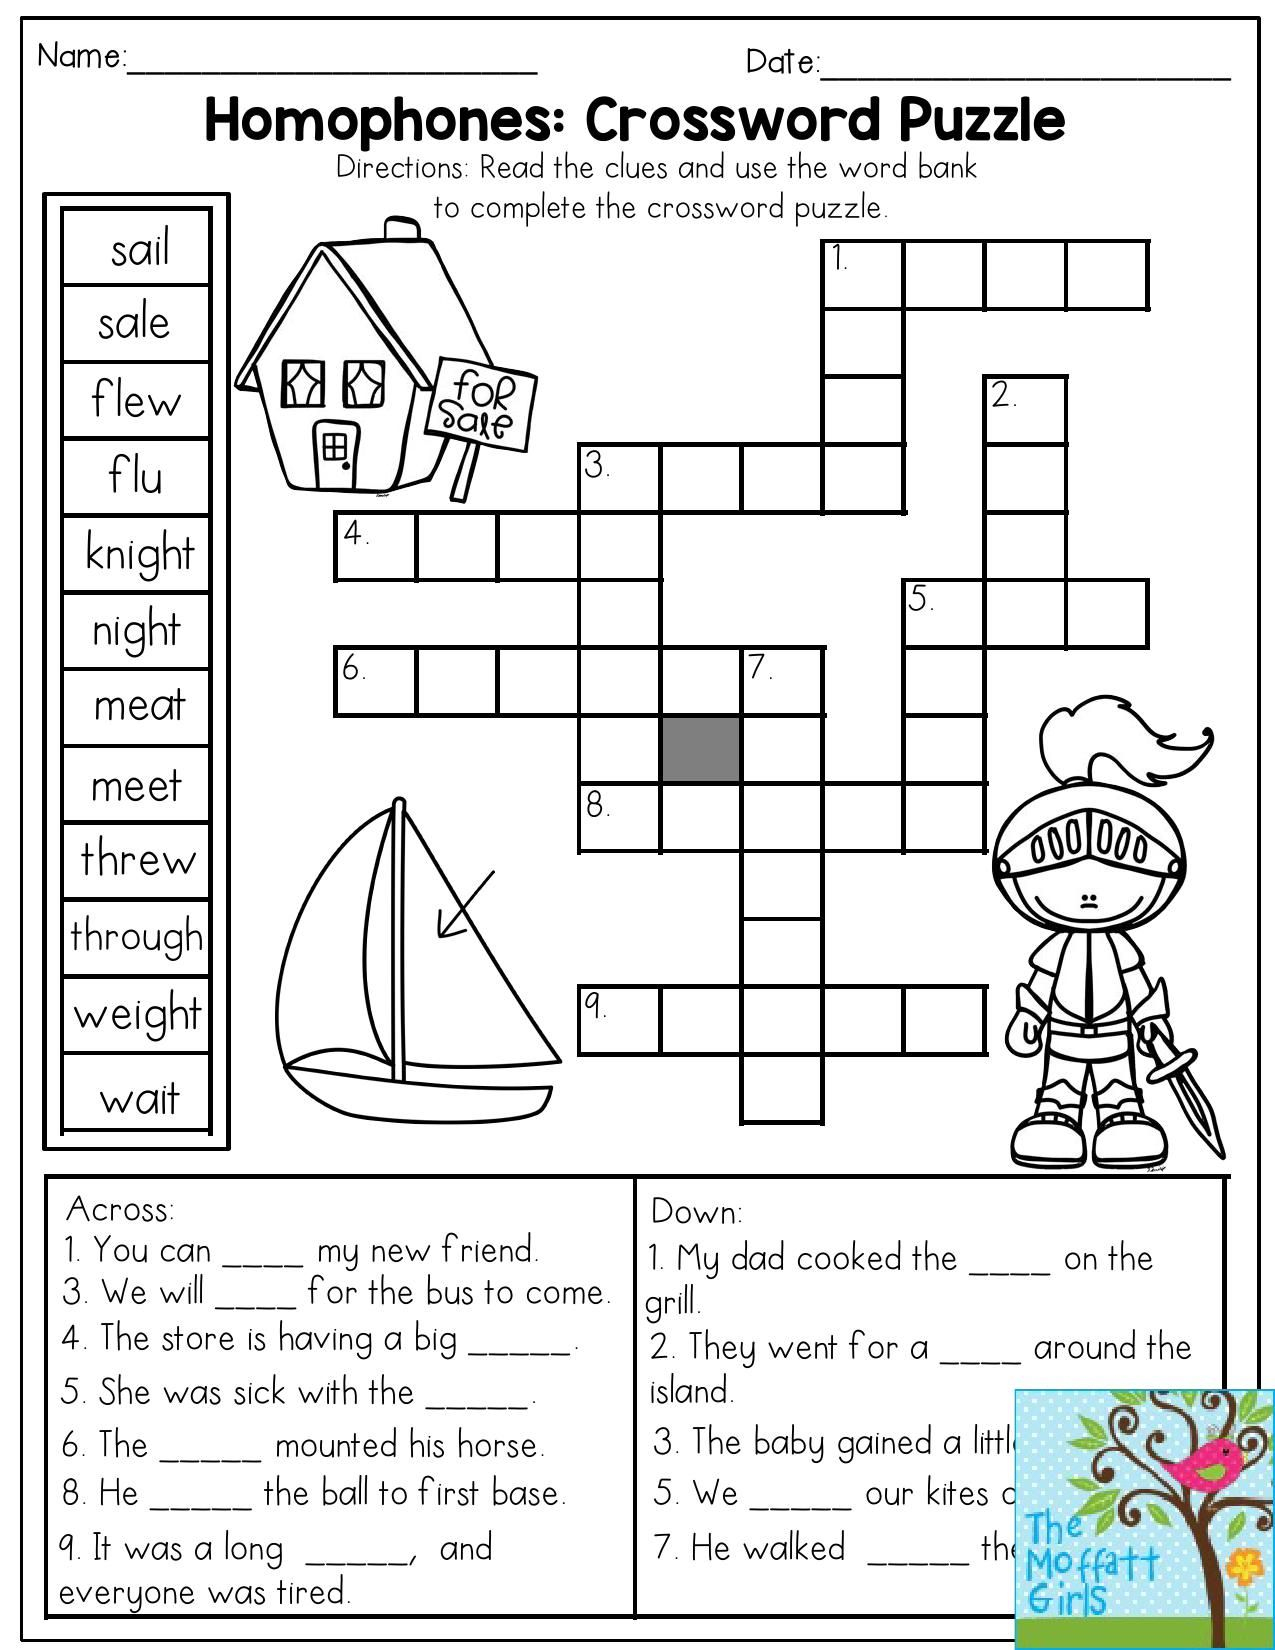 Homophones: Crossword Puzzle- Read The Clues And Use The Word Bank - Crossword Puzzle 1St Grade Printable